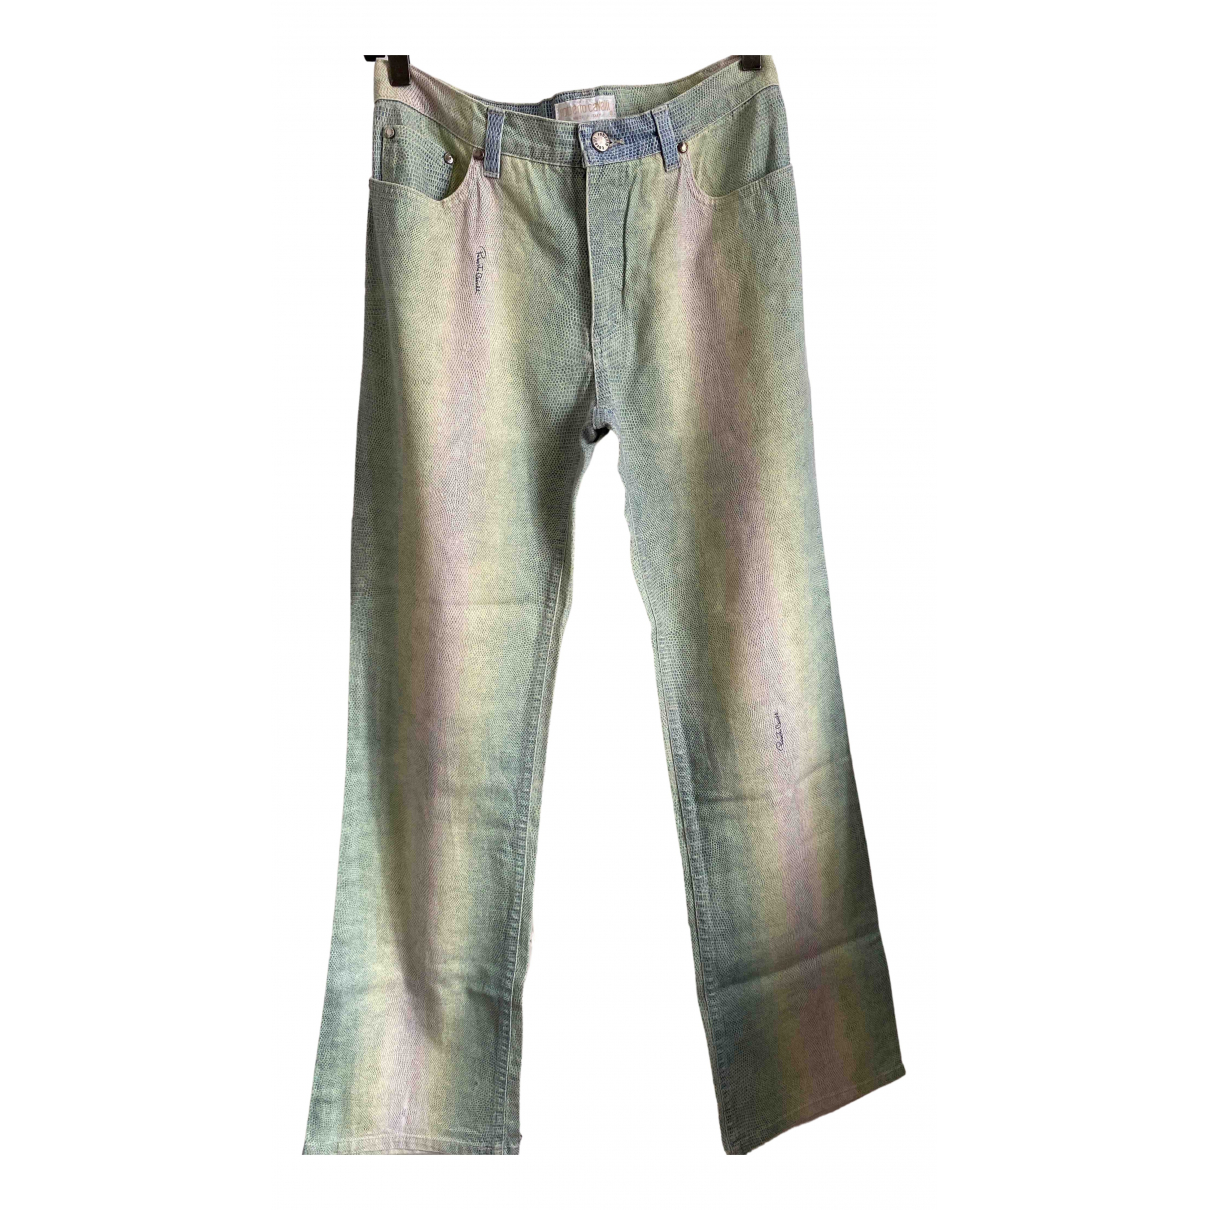 Roberto Cavalli N Multicolour Cotton Trousers for Women S International